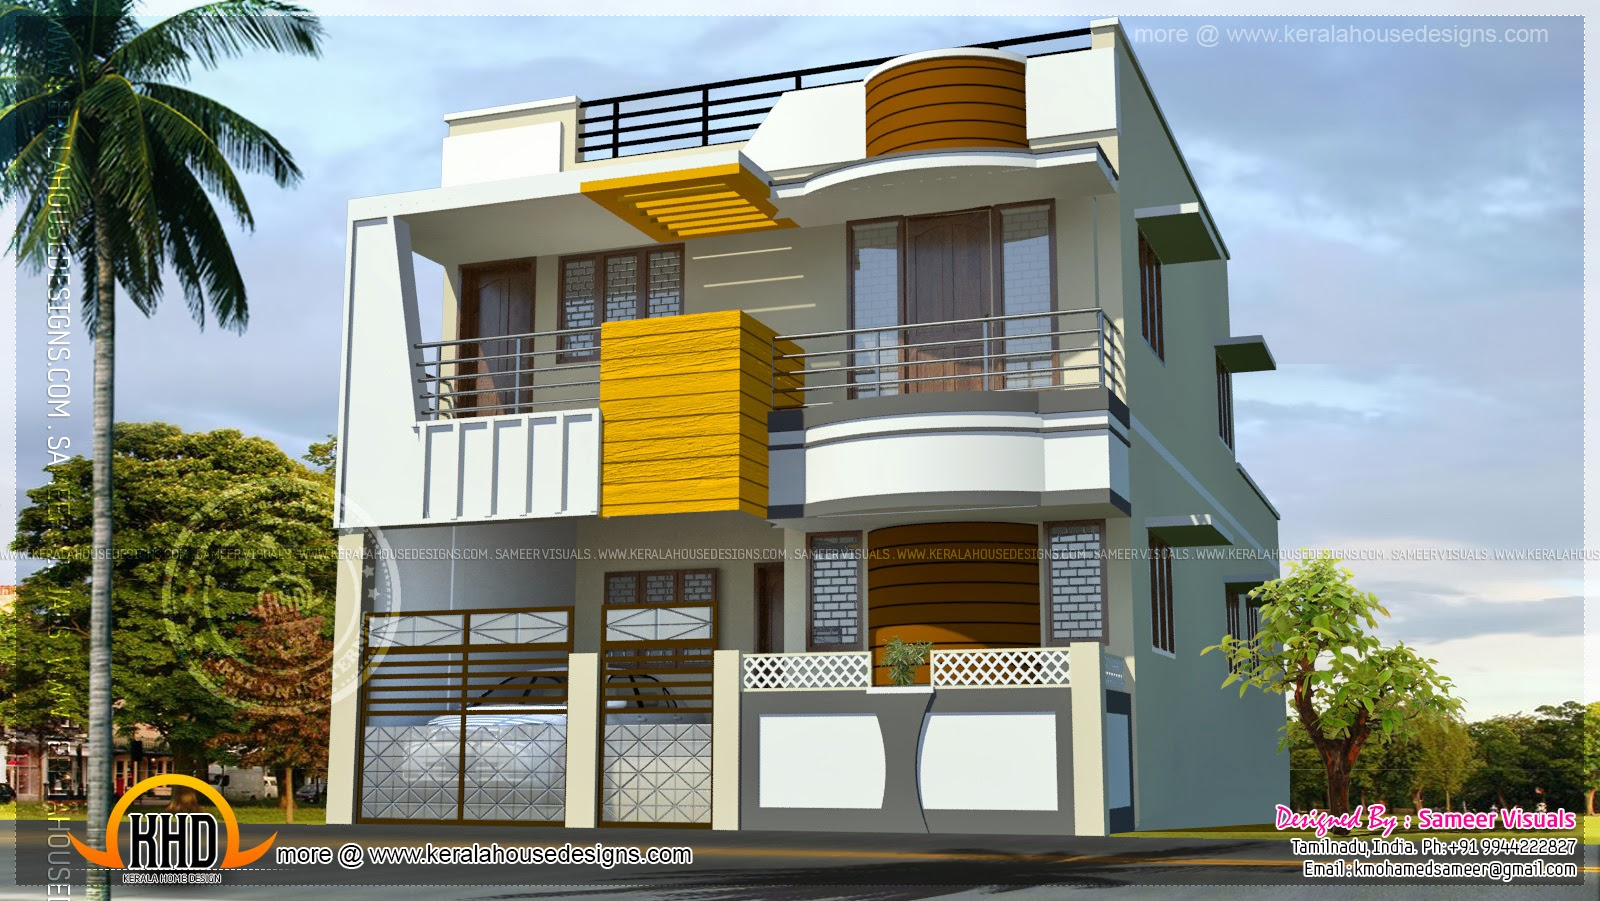 January 2014 kerala home design and floor plans Indian model house plan design